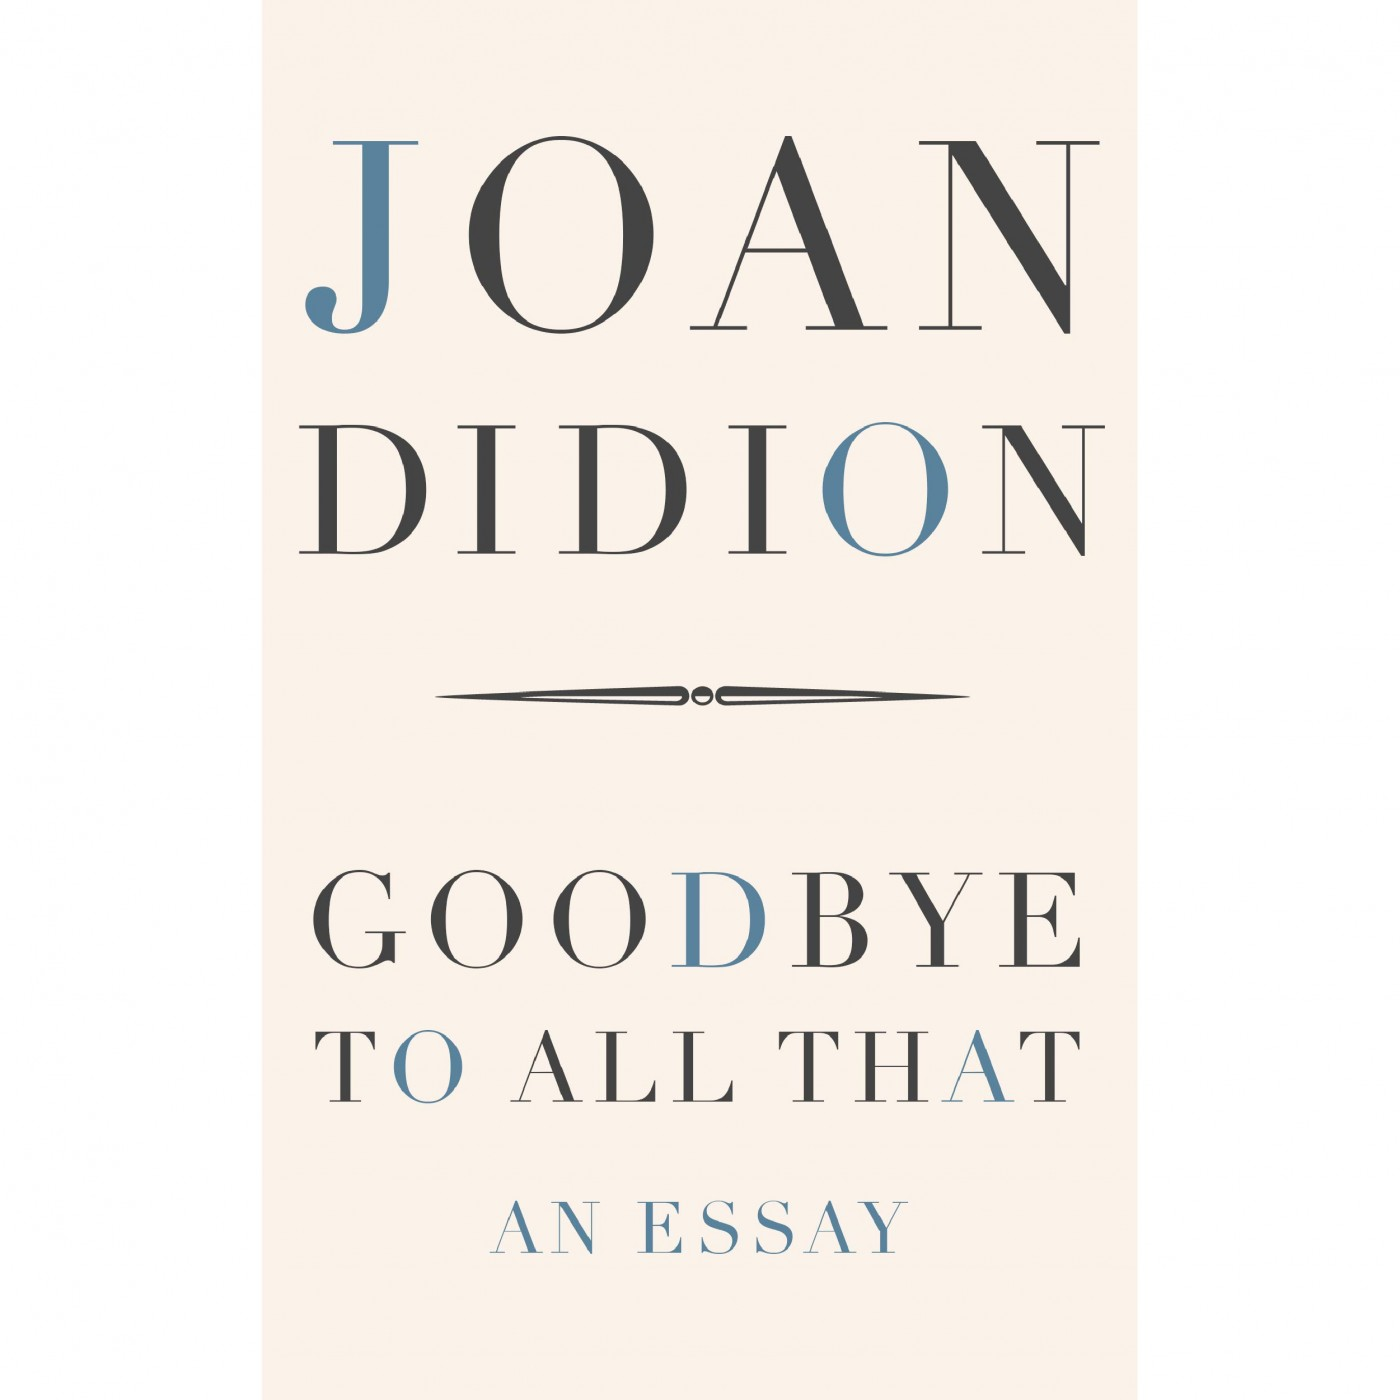 022 Joan Didion Essays  Uy2501 Ss2501 Essay Singular Collections On Santa Ana Winds Amazon1400